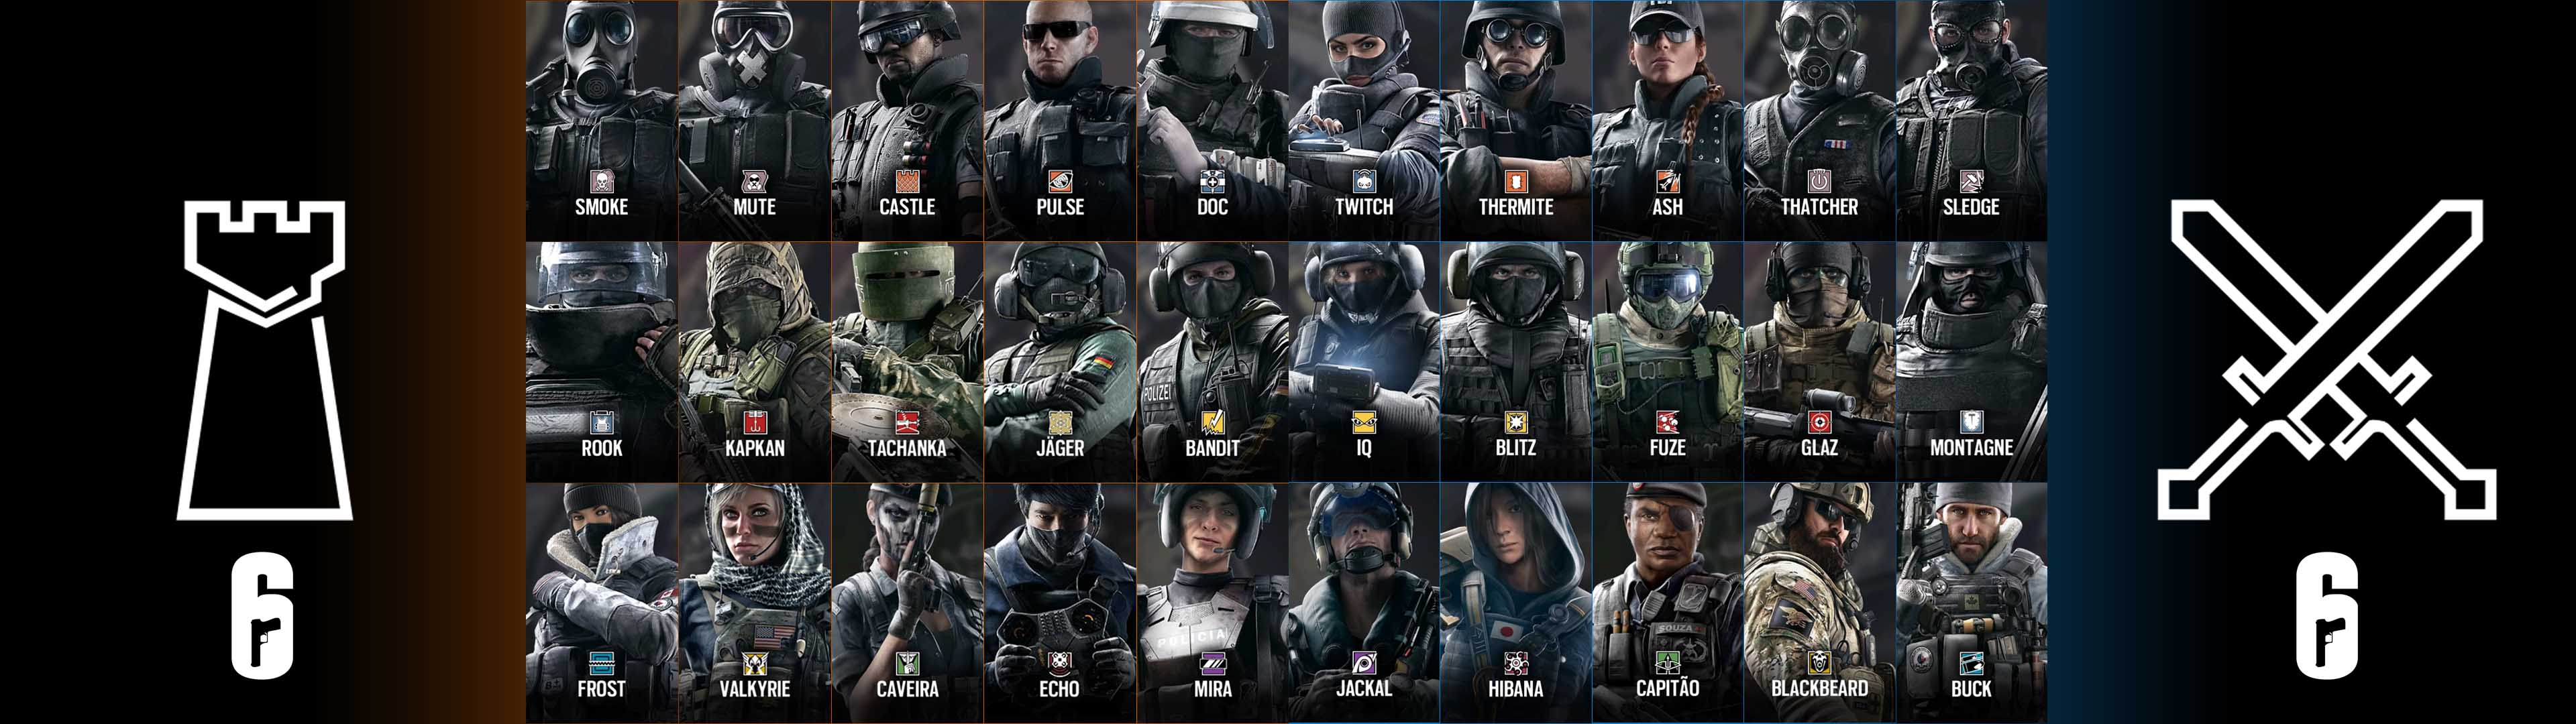 Rainbow 6 Seige Wallpaper Posted By Ryan Tremblay